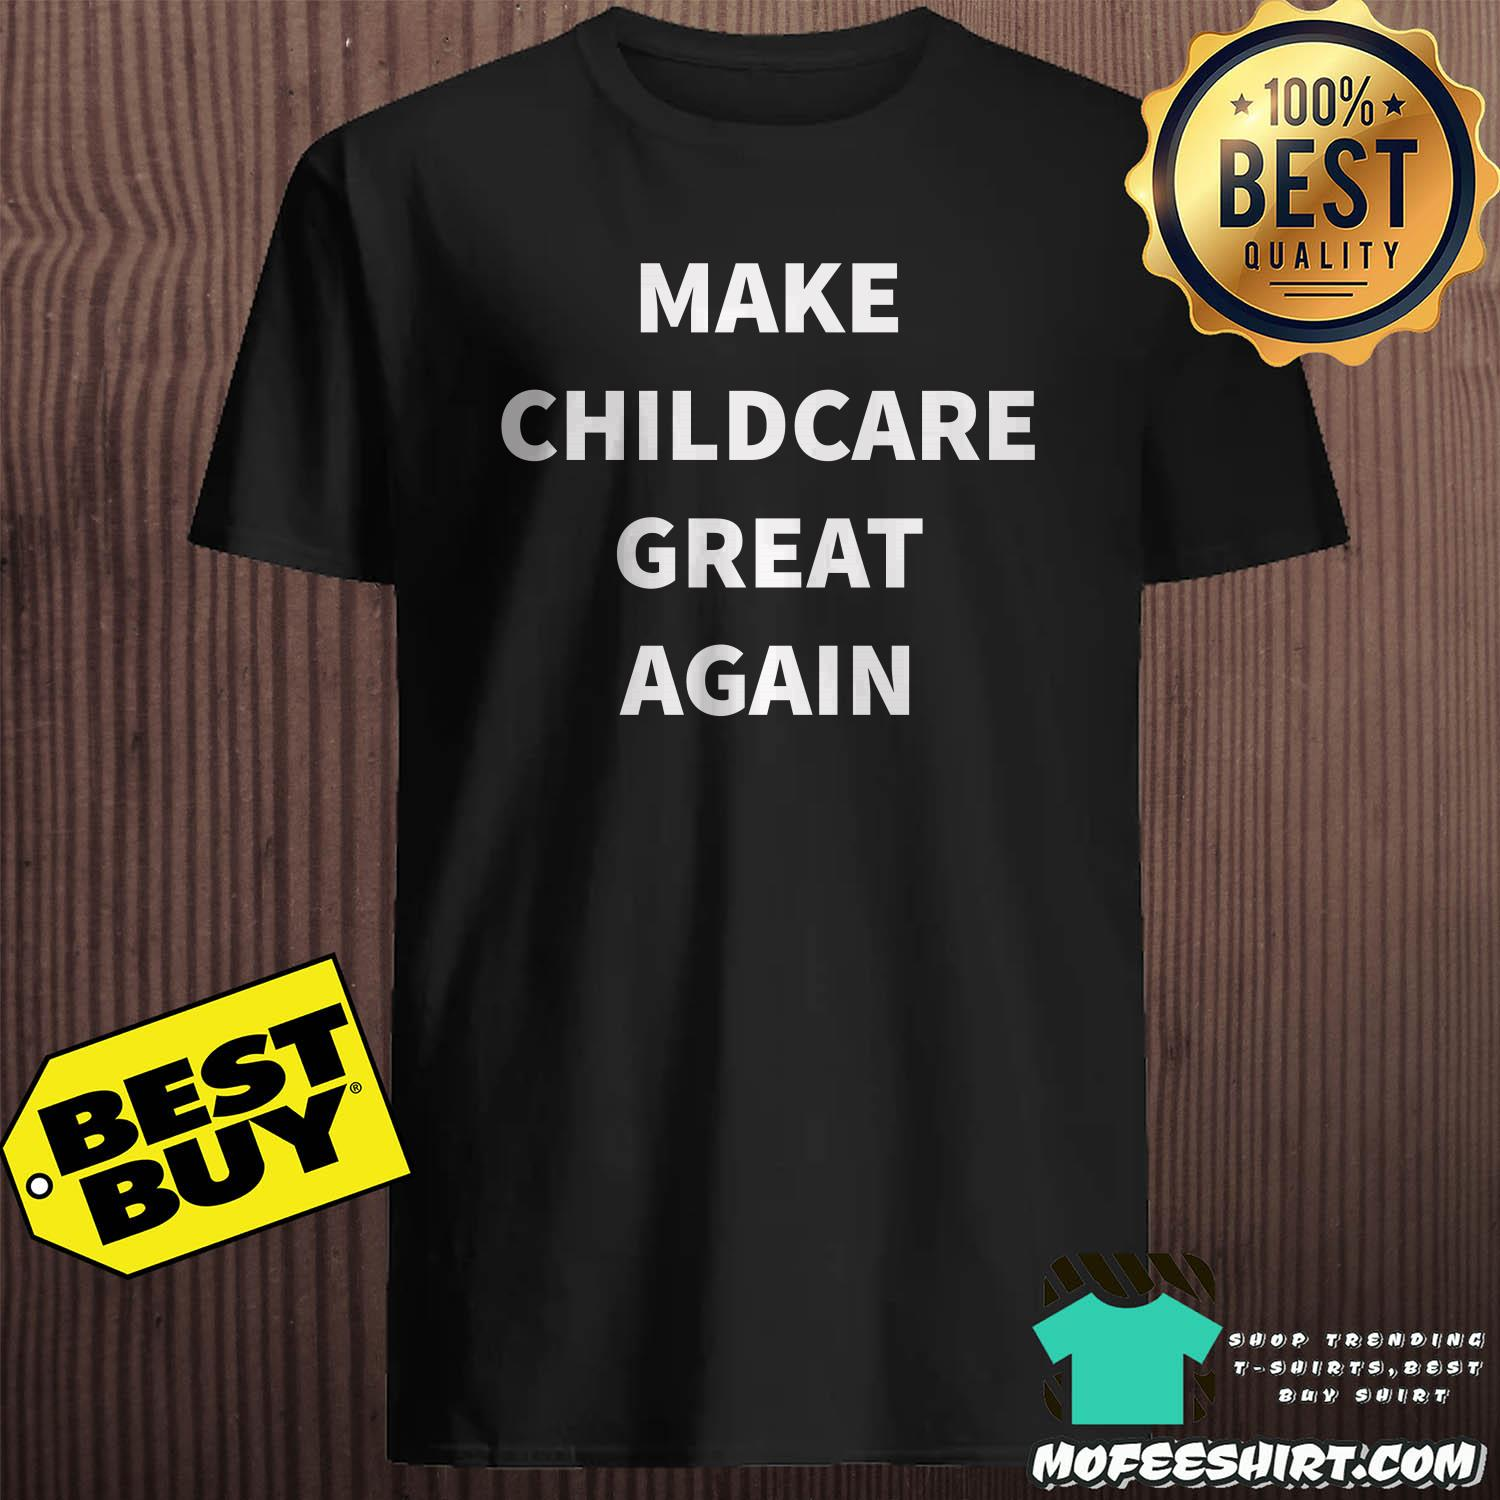 Make Childcare Great Again shirt